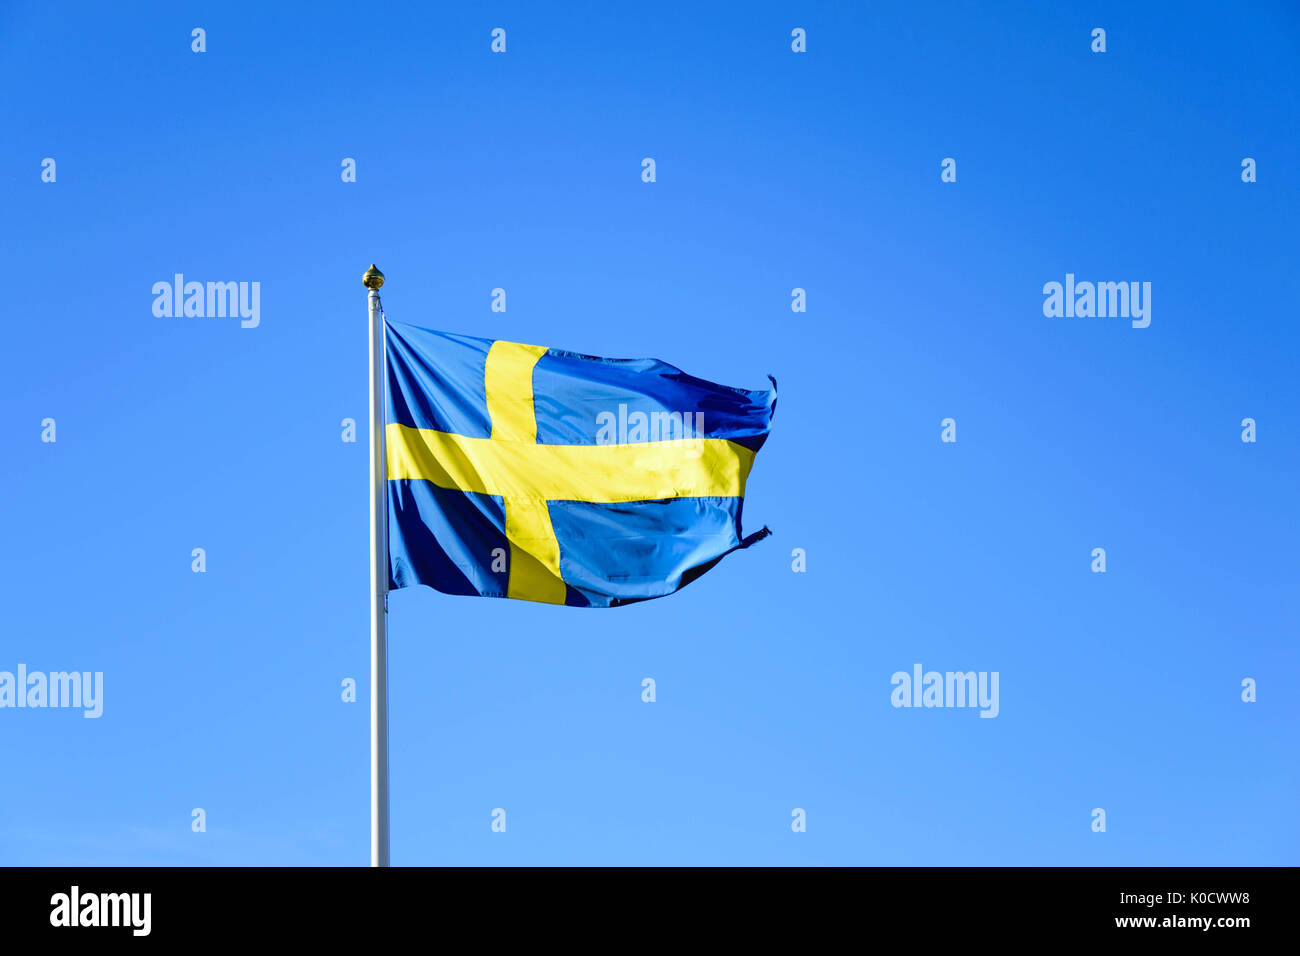 Swedish flag waving in a clear blue sky. Taken with Nikon D5300 - Stock Image